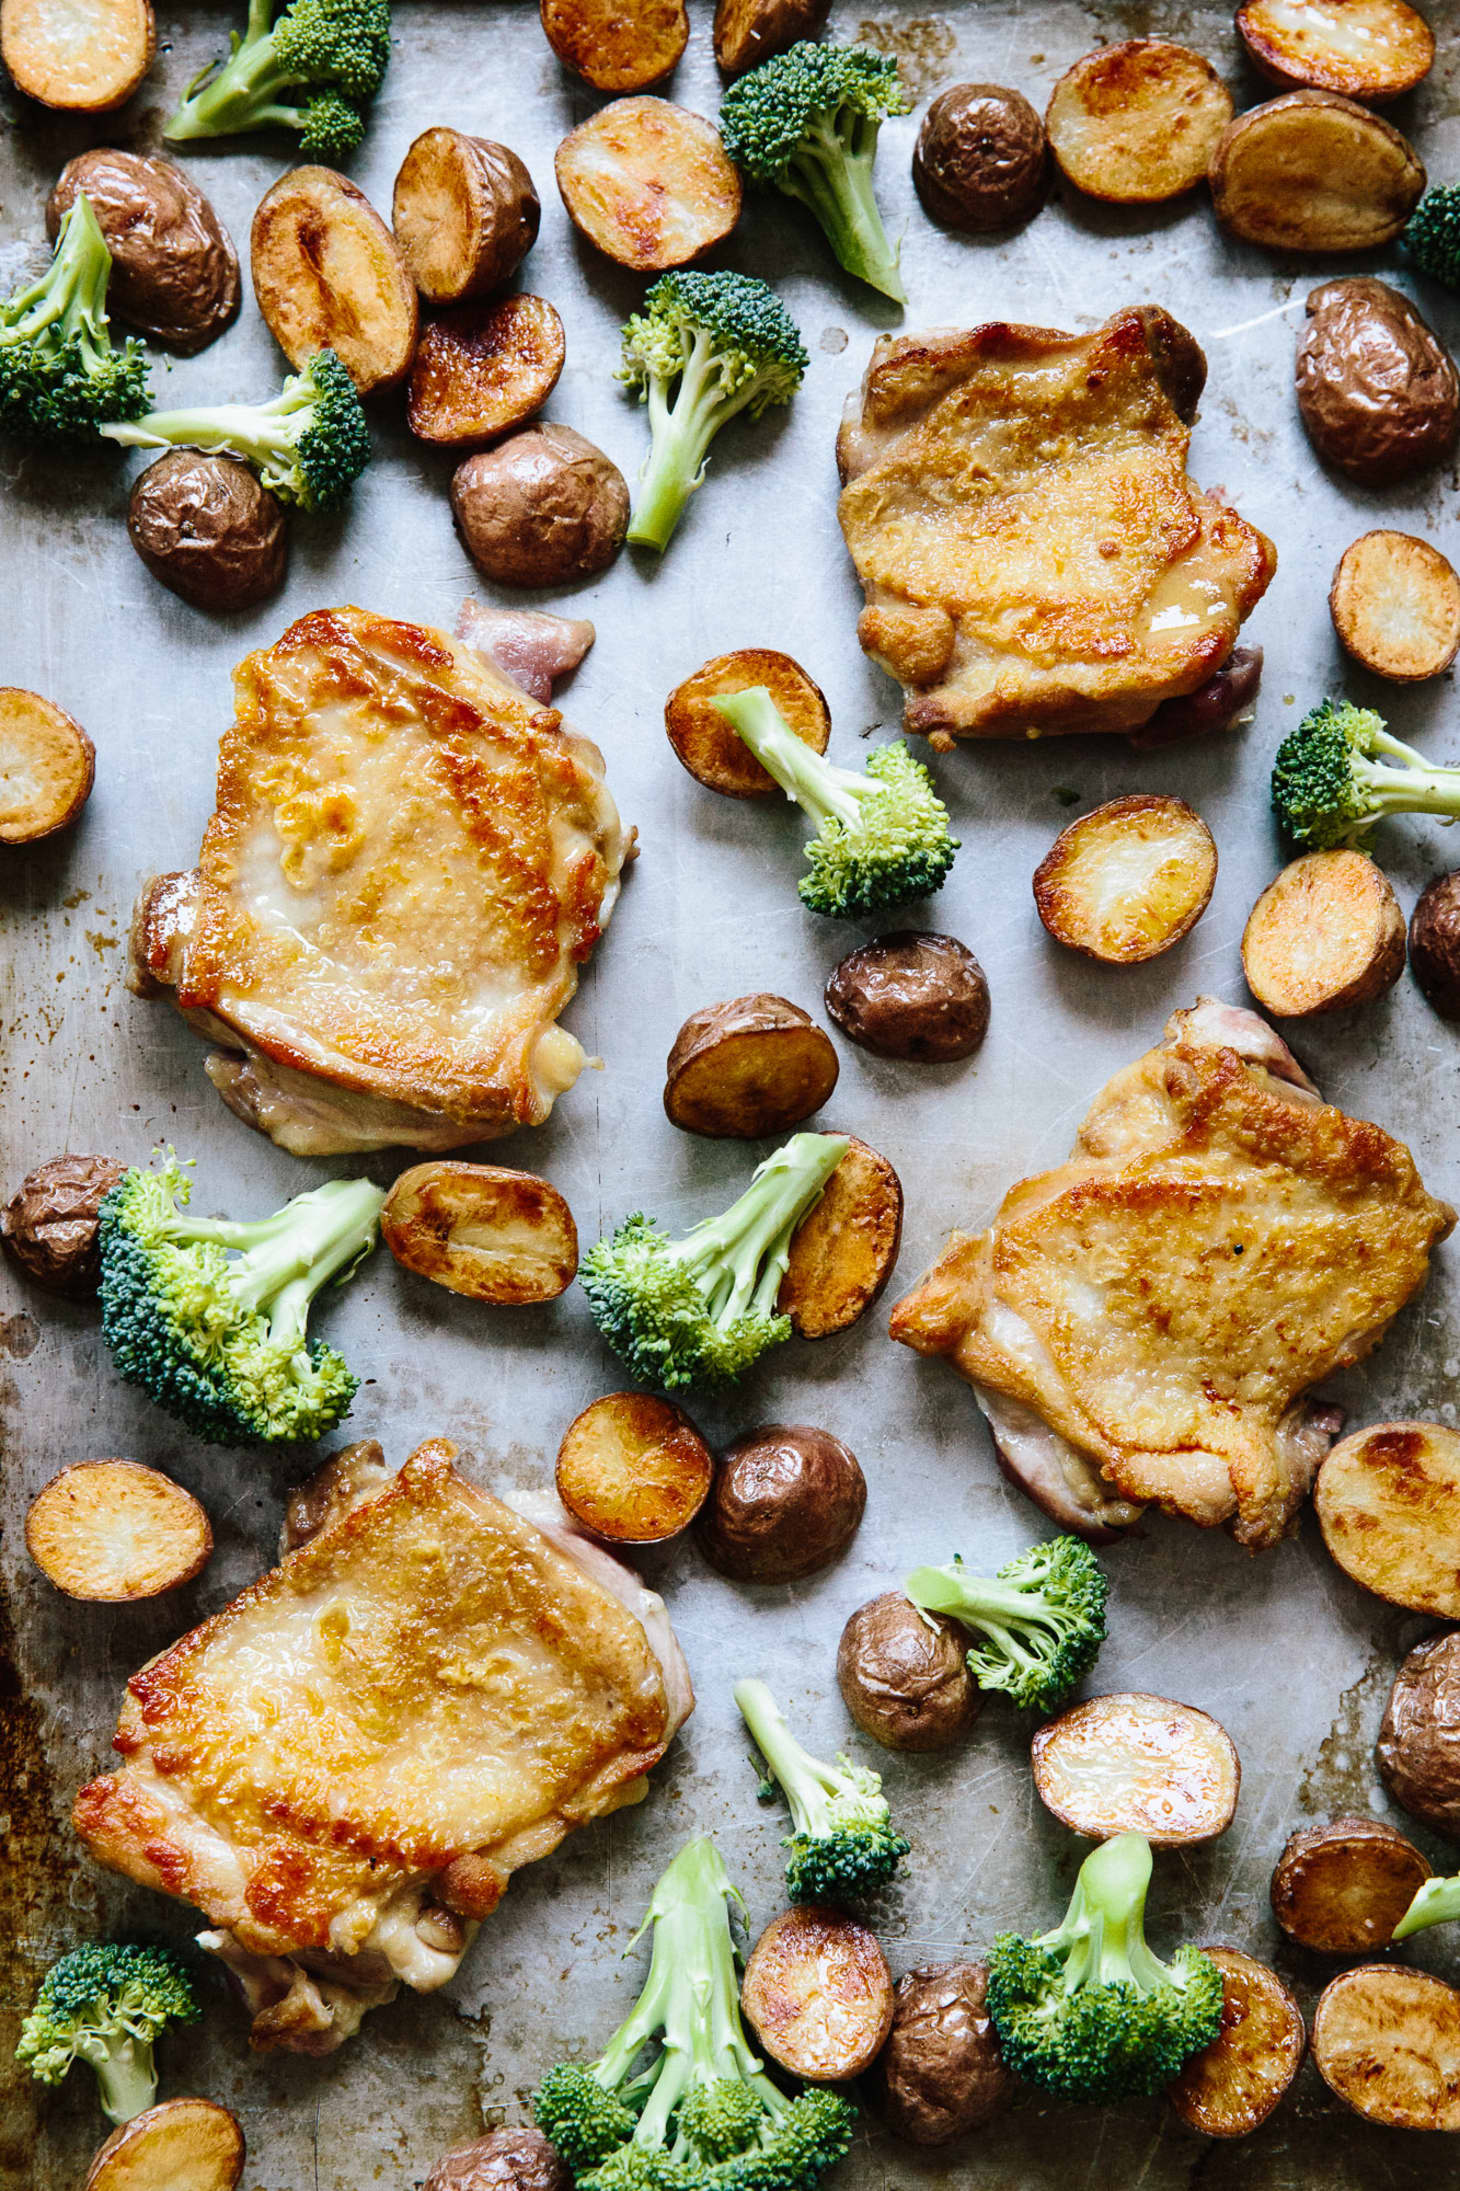 How To Make A Chicken And Roasted Vegetable Sheet Pan Meal